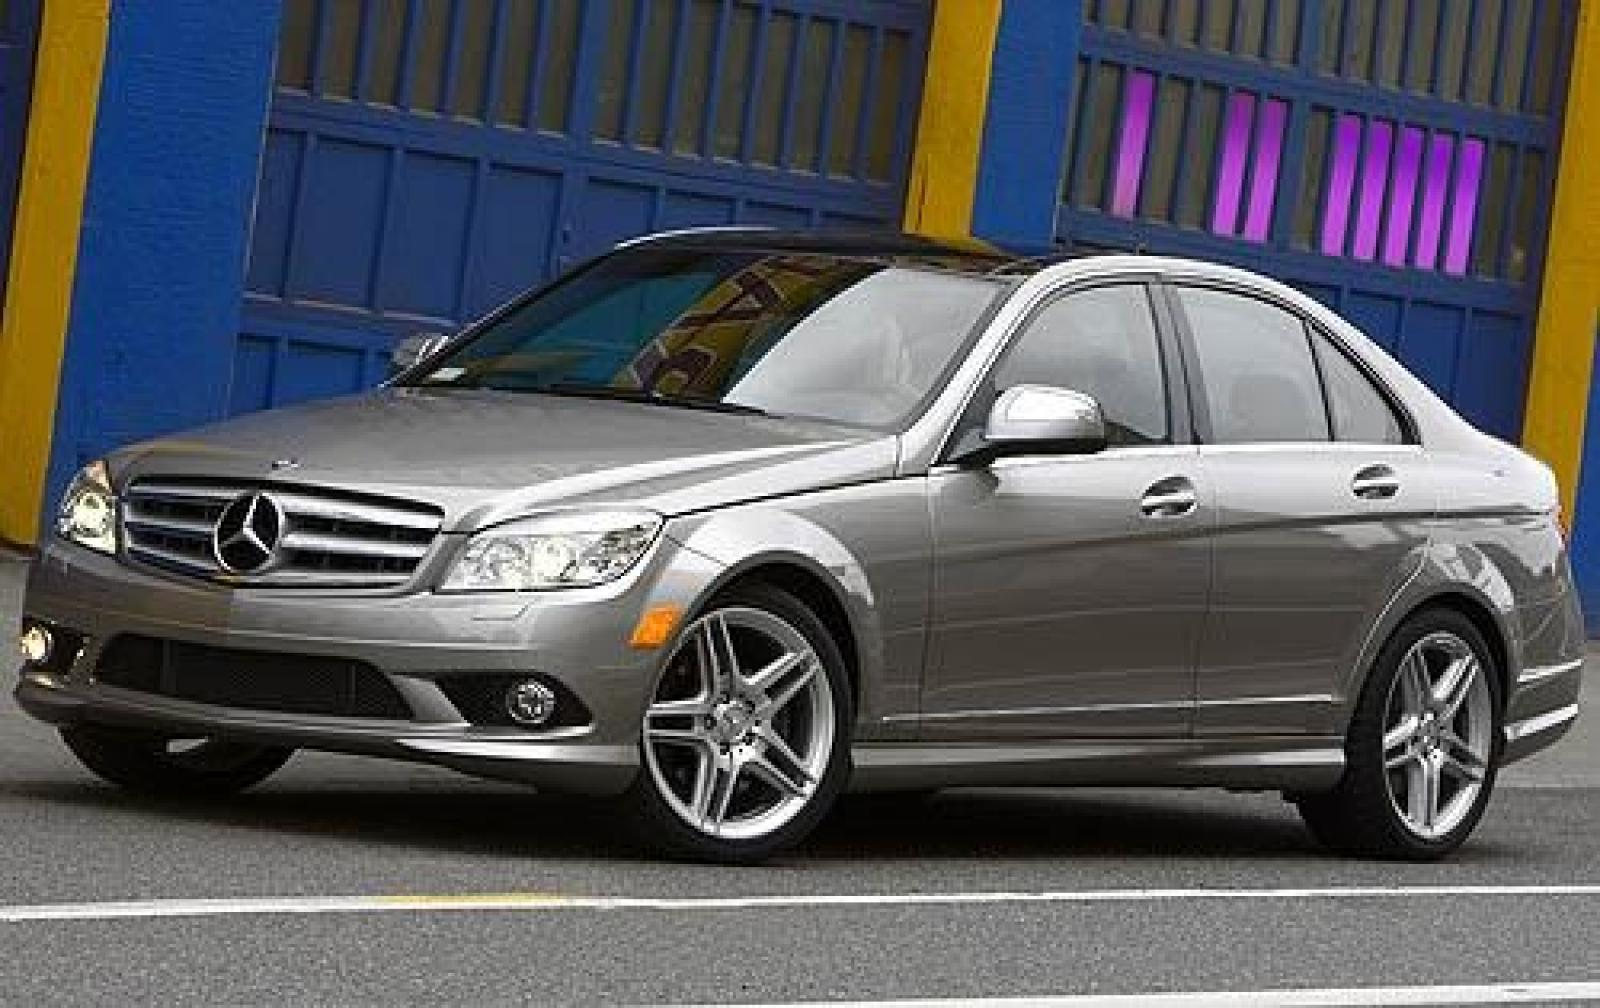 hight resolution of 800 1024 1280 1600 origin 2008 mercedes benz